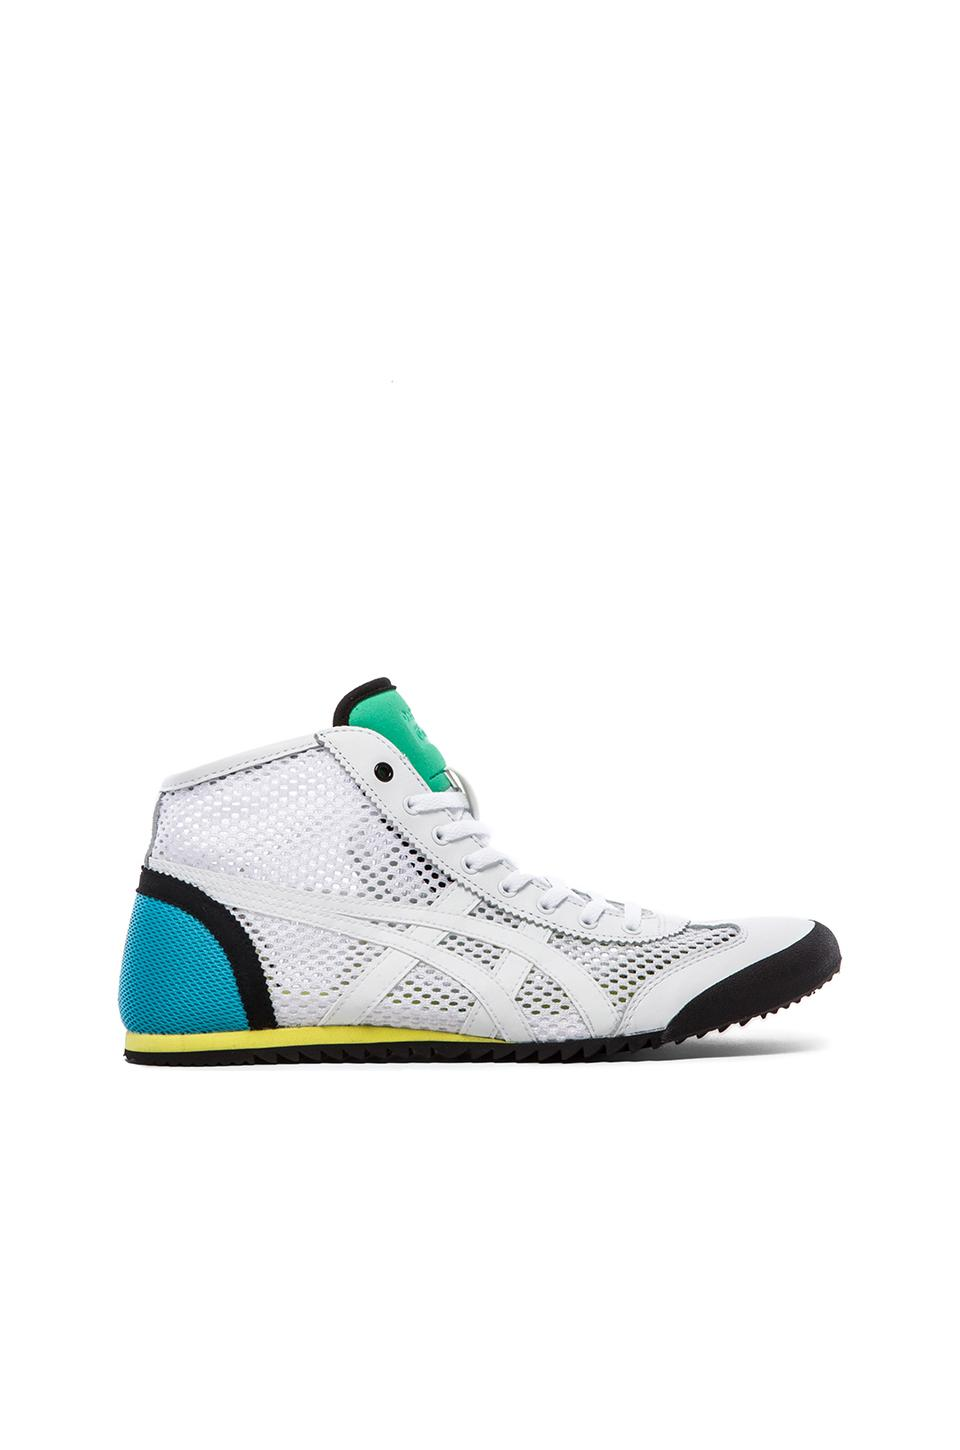 Onitsuka Tiger x Andrea Pompilio Mexico DX Mid in White